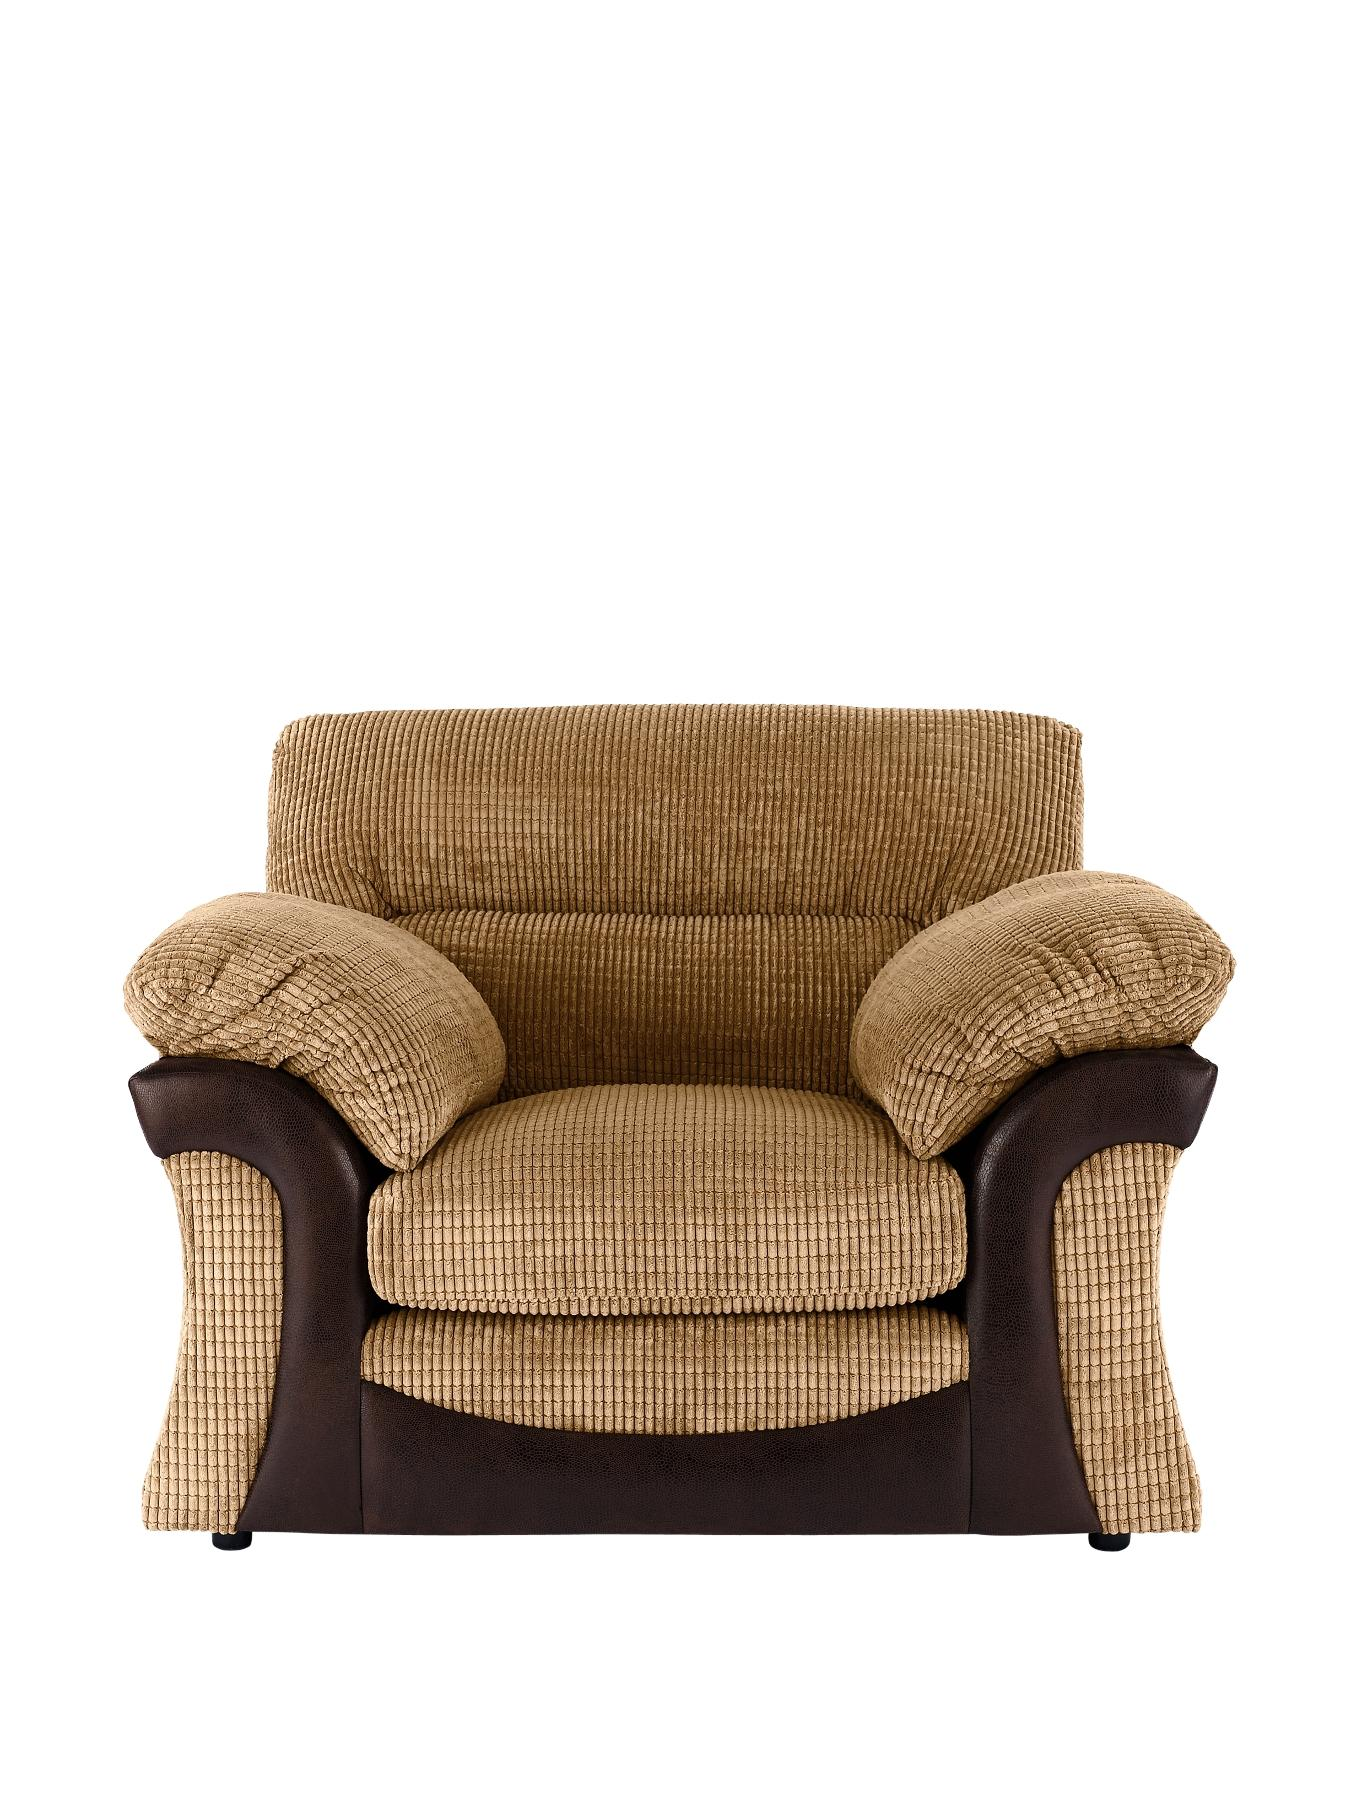 Rapide Chair - Chocolate, Chocolate,Charcoal at Very, from Littlewoods